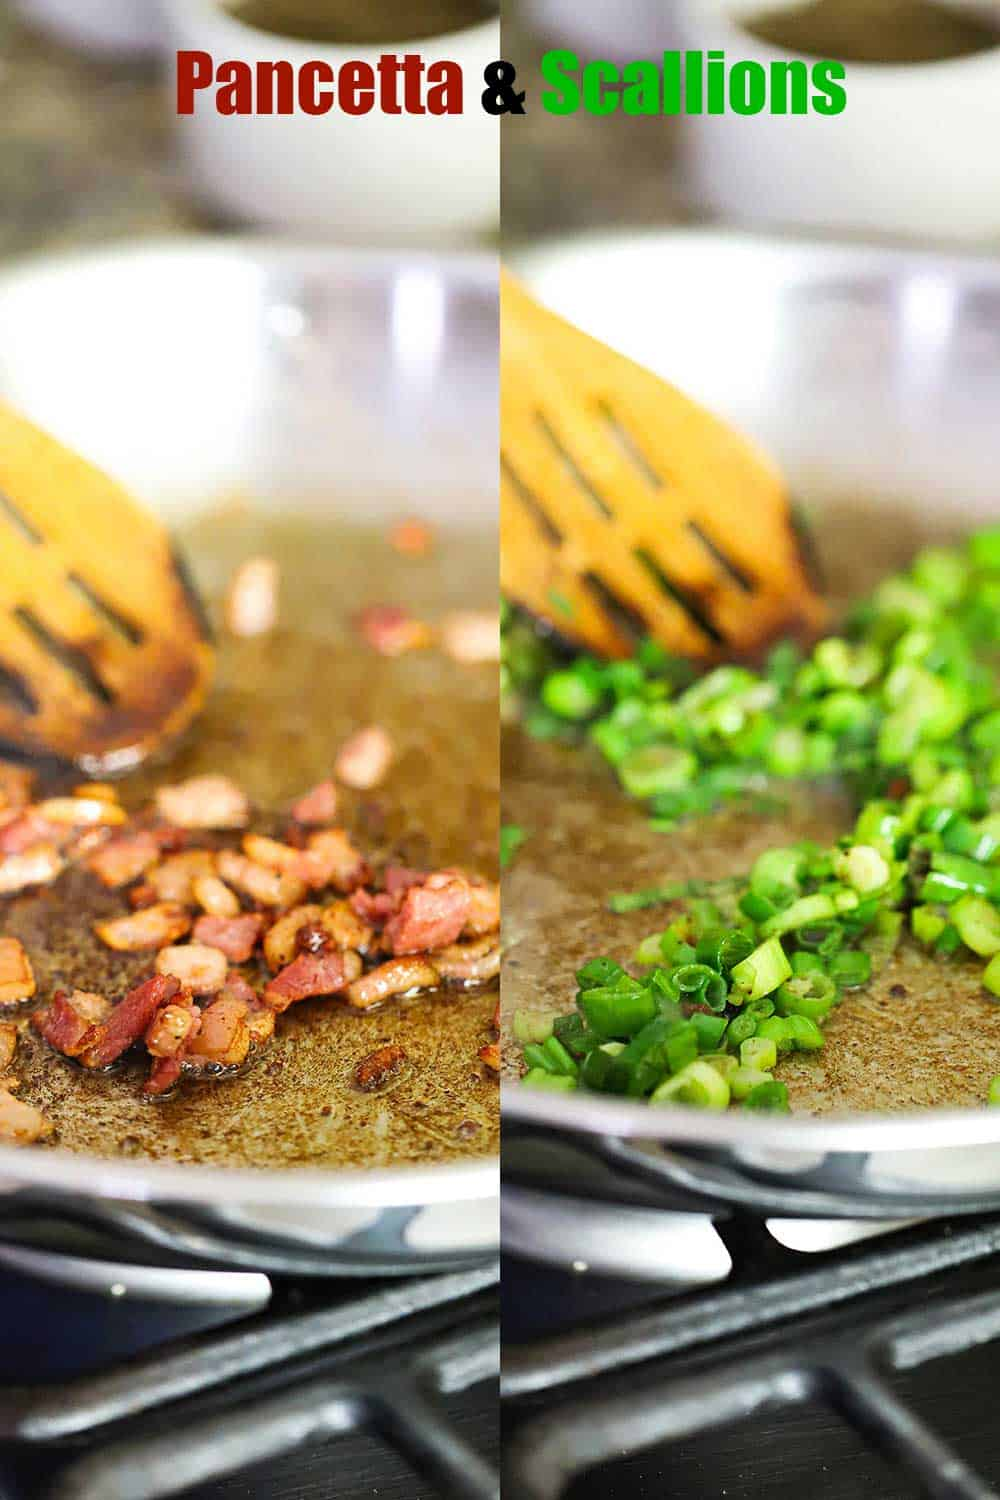 2 side by side images with the one on the left being pancetta cooking in a large silver skillet and the right being chopped green onions cooking in the same skillet.